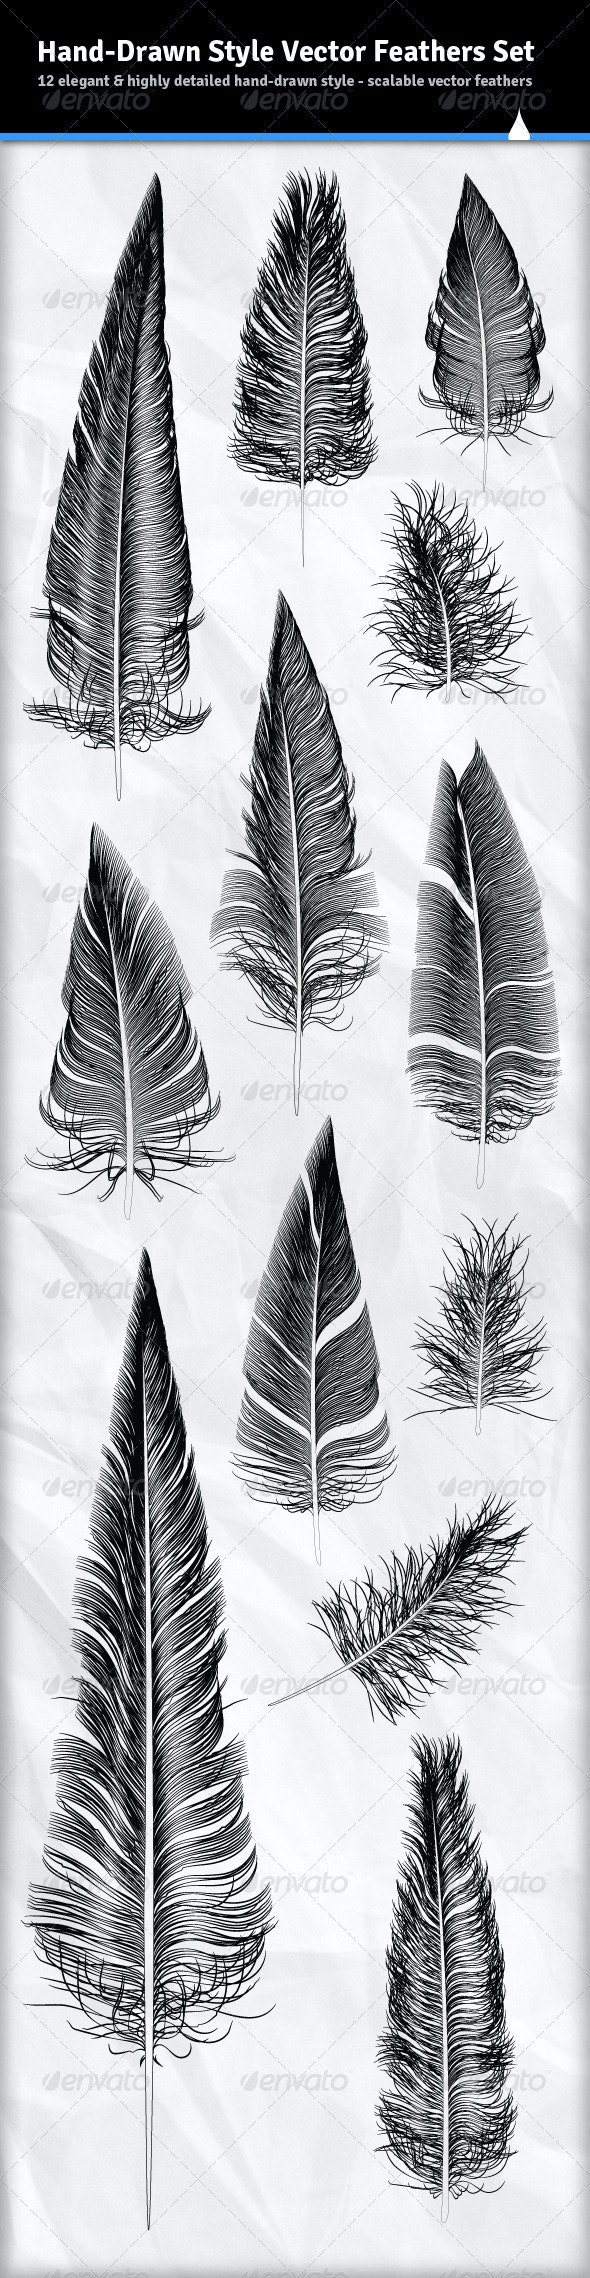 12 Various Hand Drawn Style Vector Feathers - Organic Objects Objects